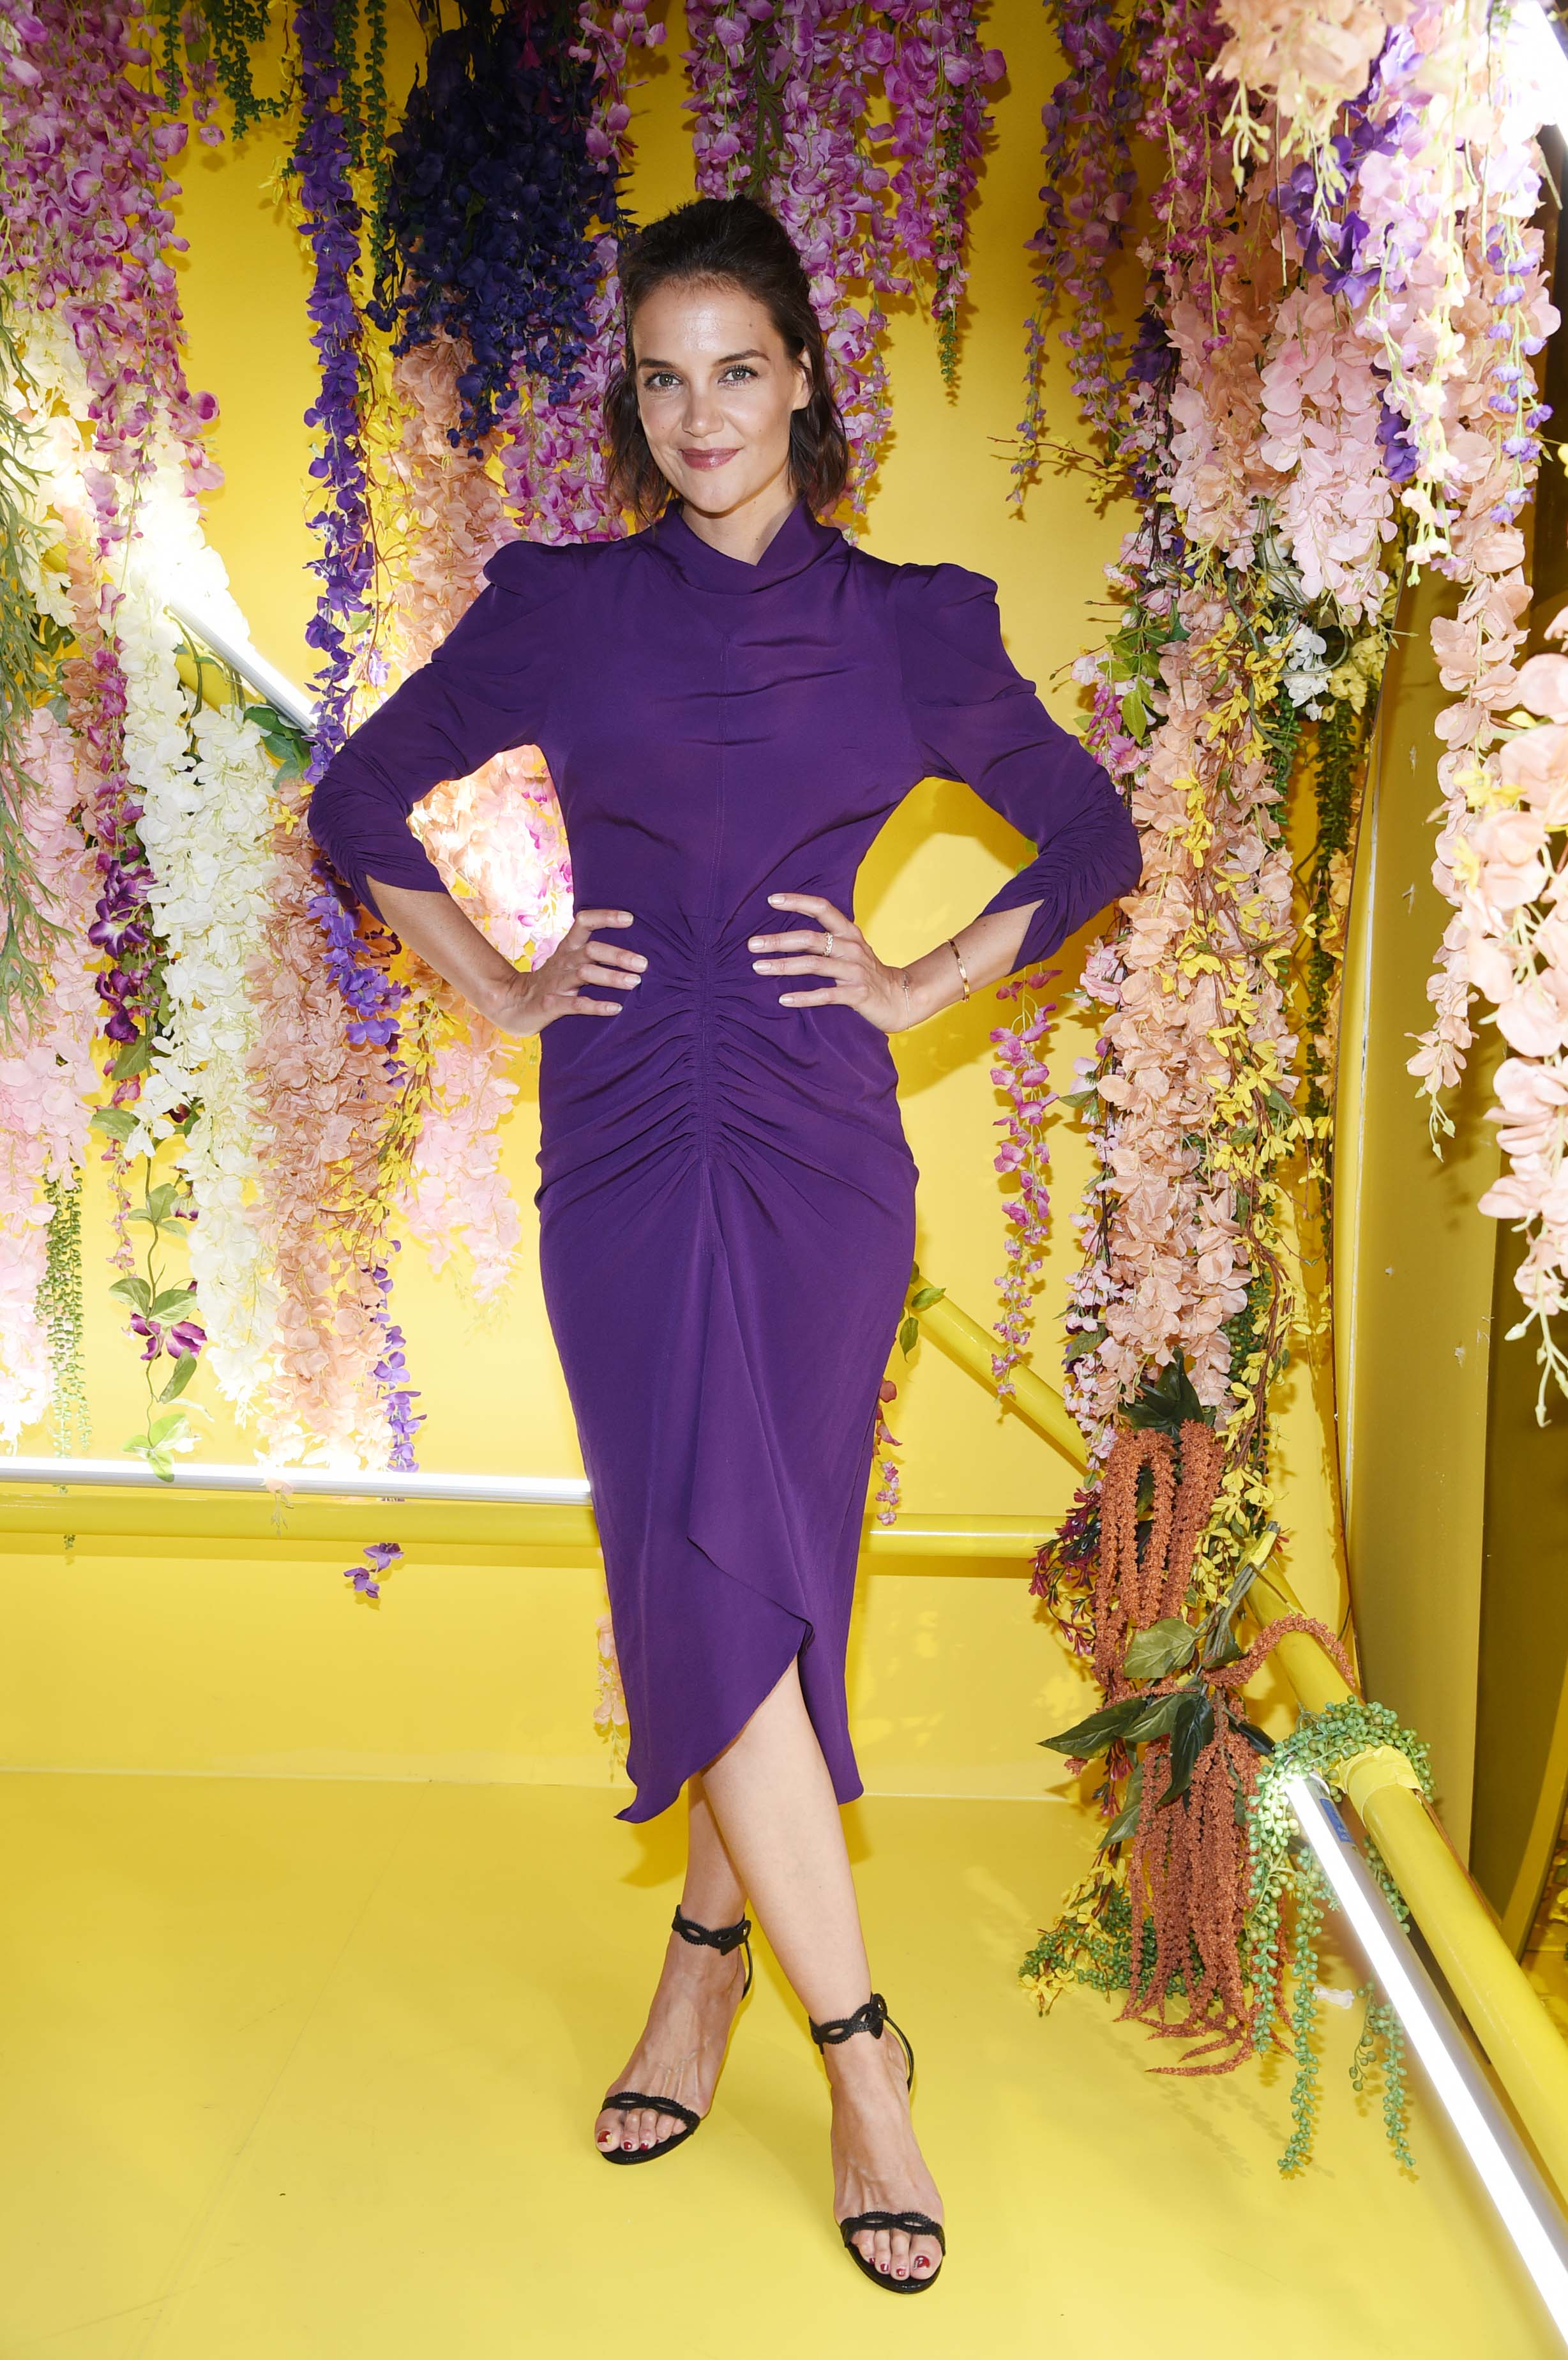 katie-holmes-a-human-experience-exhibit-in-nyc-9418-9